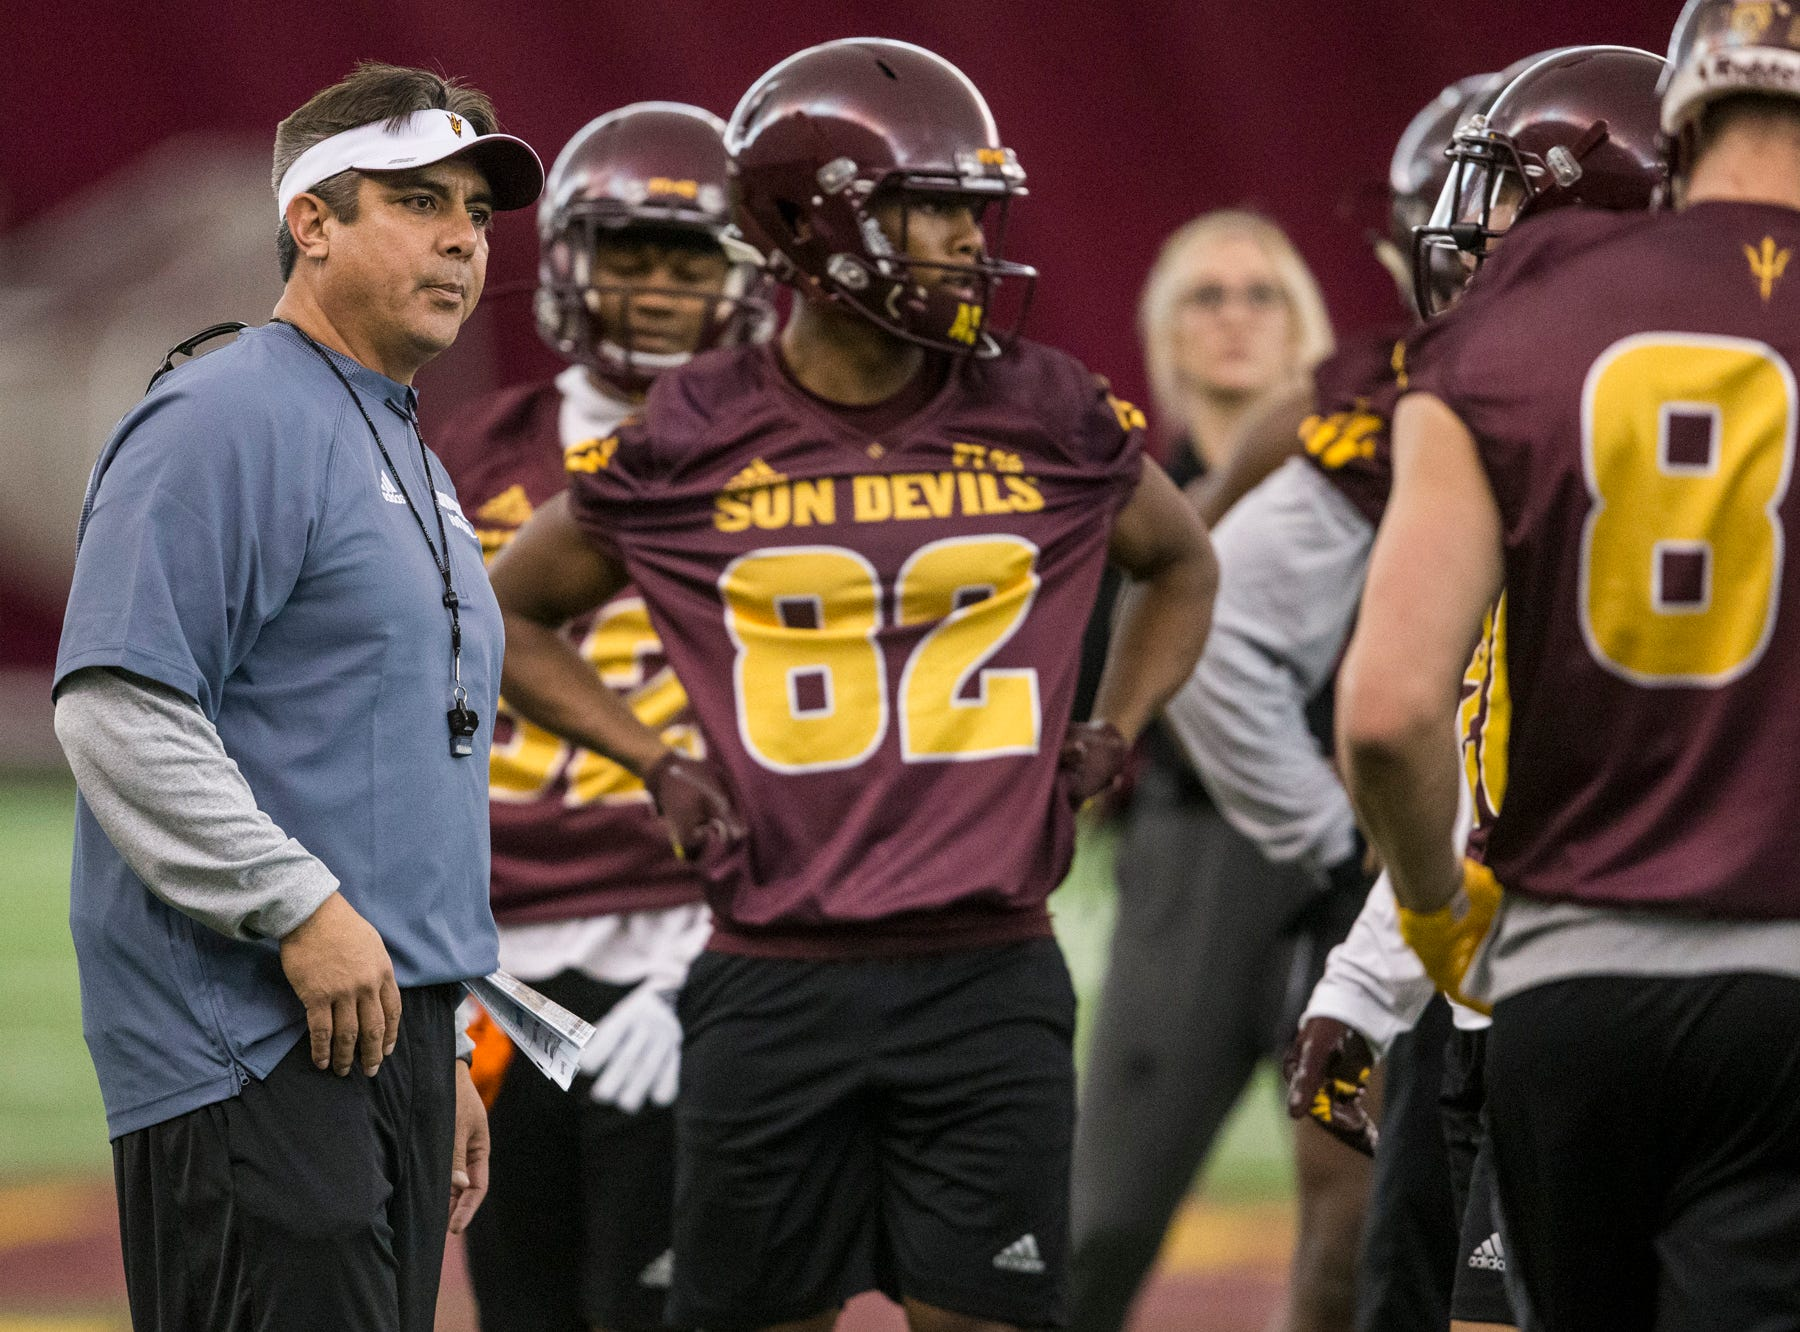 Running backs coach Shawn Aguano gives instructions during practice on Tuesday, Feb. 5, 2019, at the Verde Dickey Dome in Tempe, Ariz.